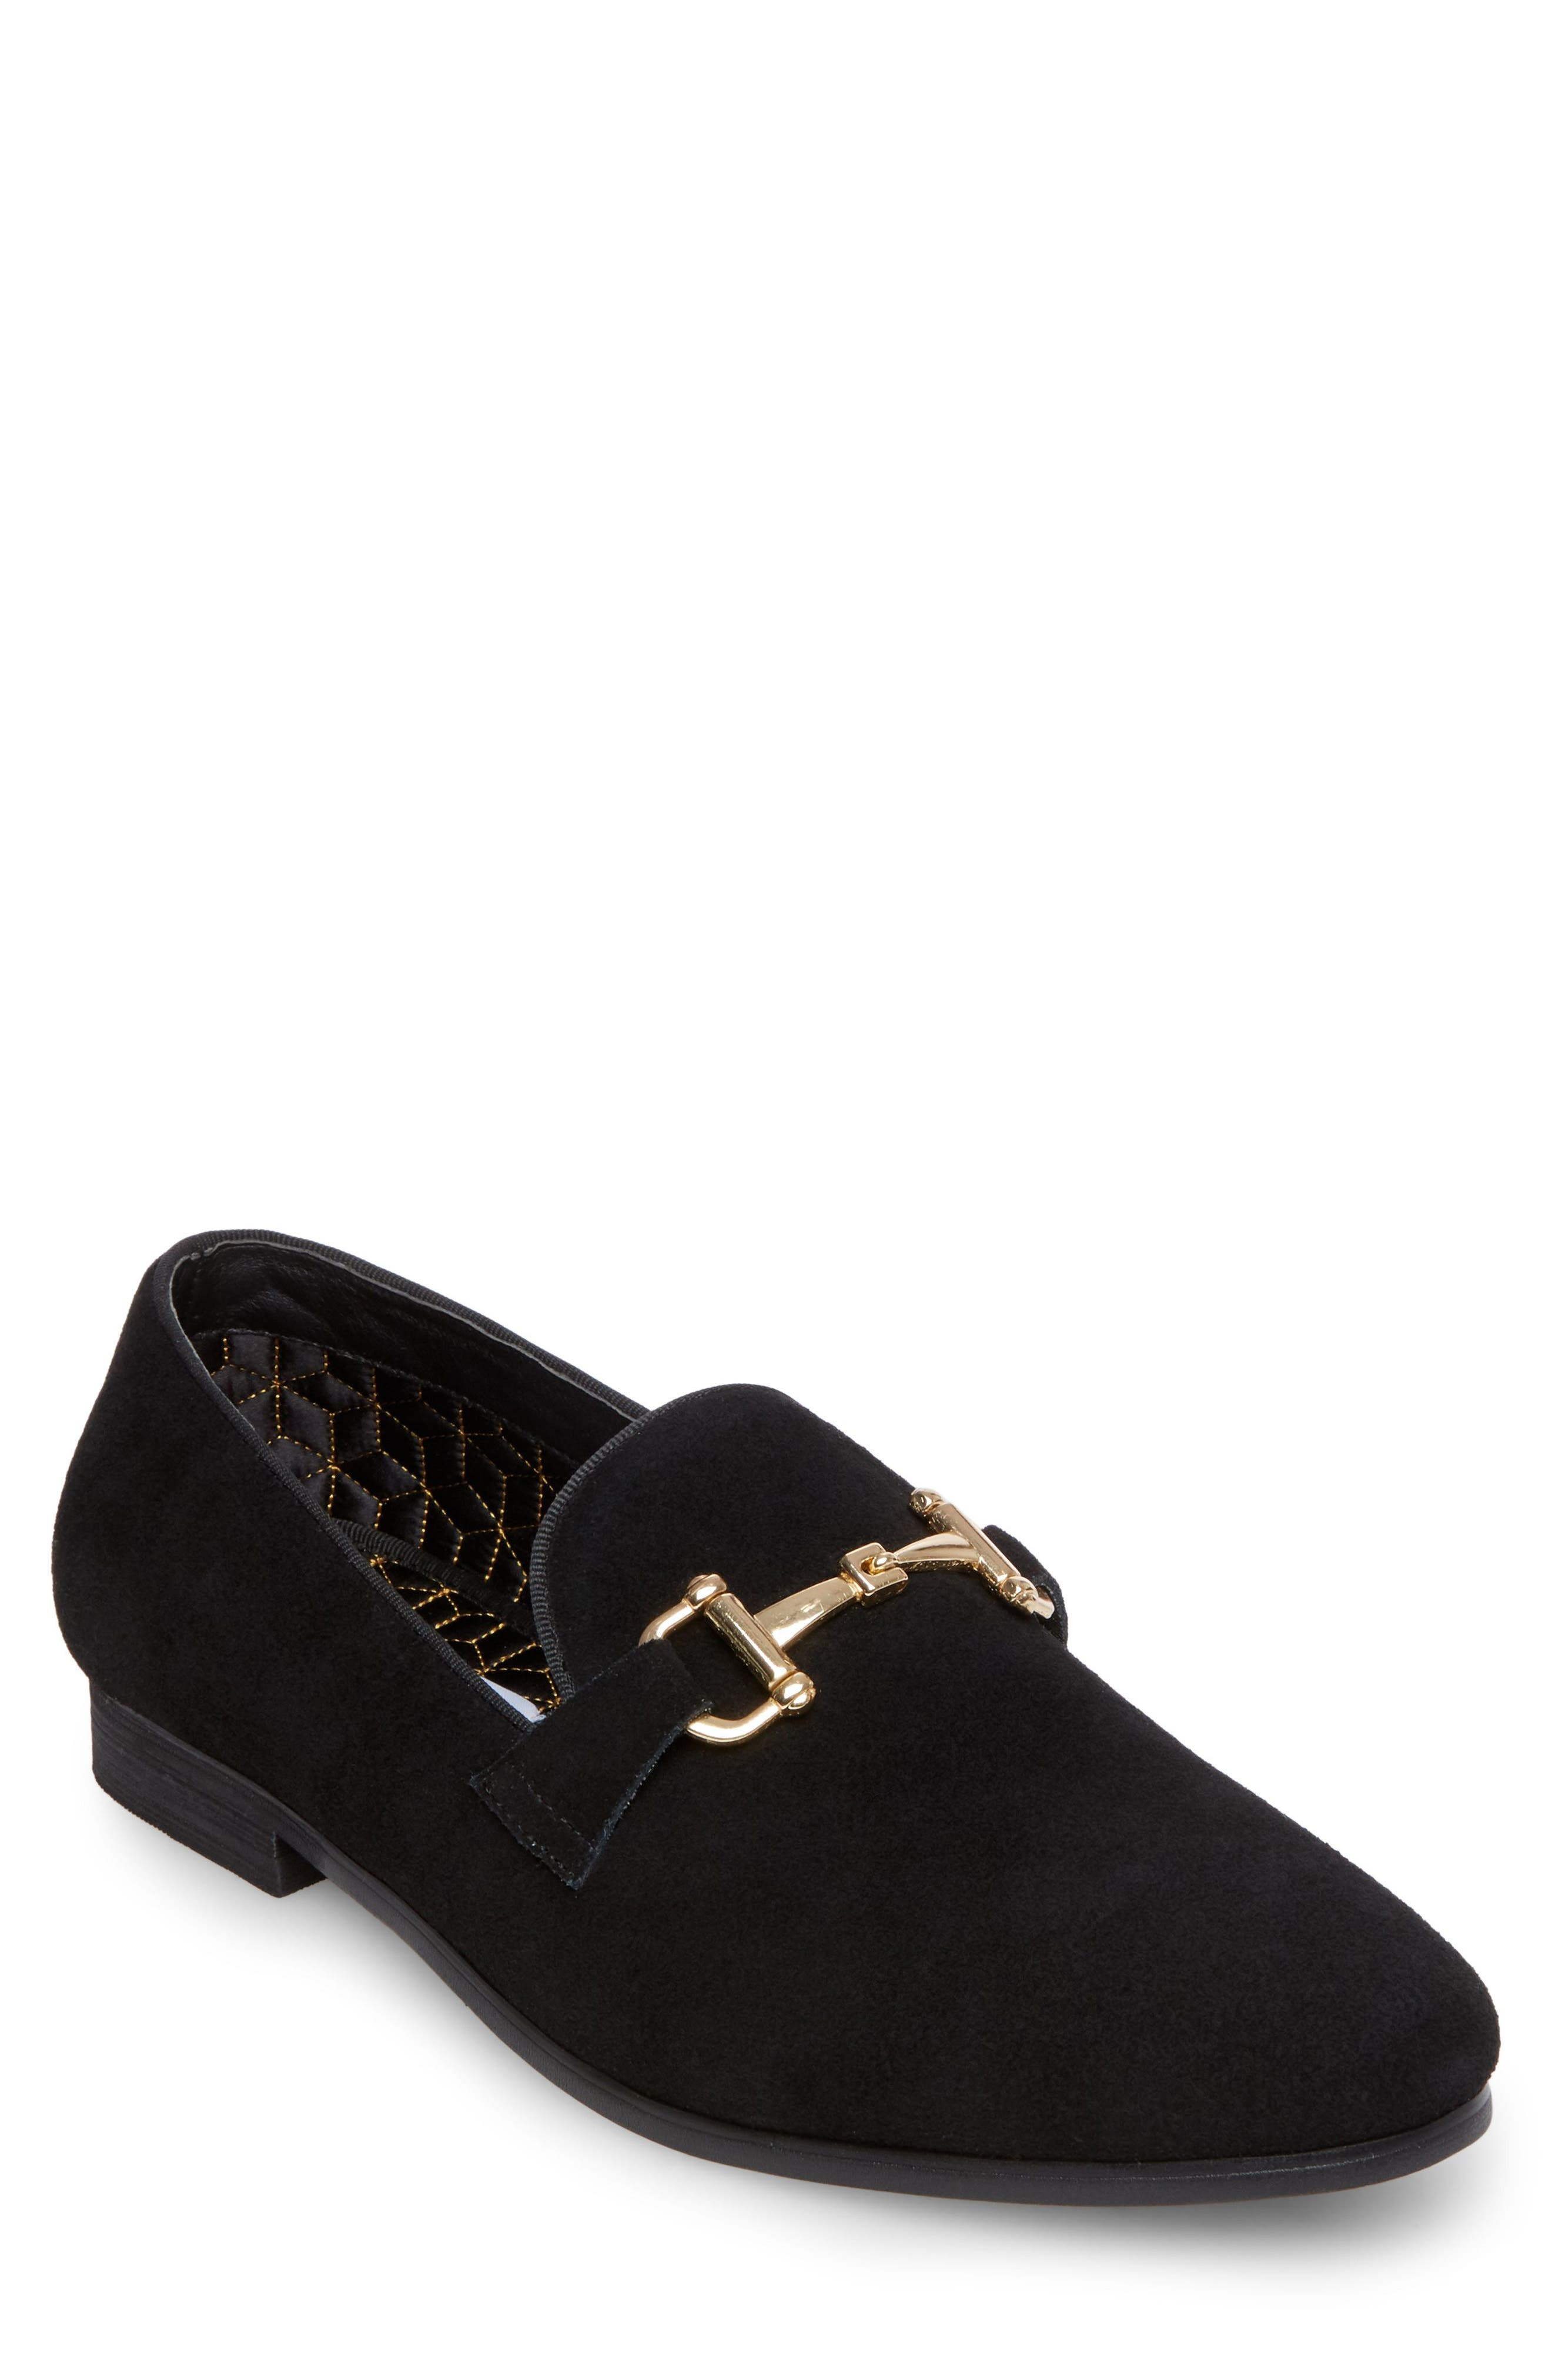 Coinage Bit Loafer,                             Main thumbnail 1, color,                             006